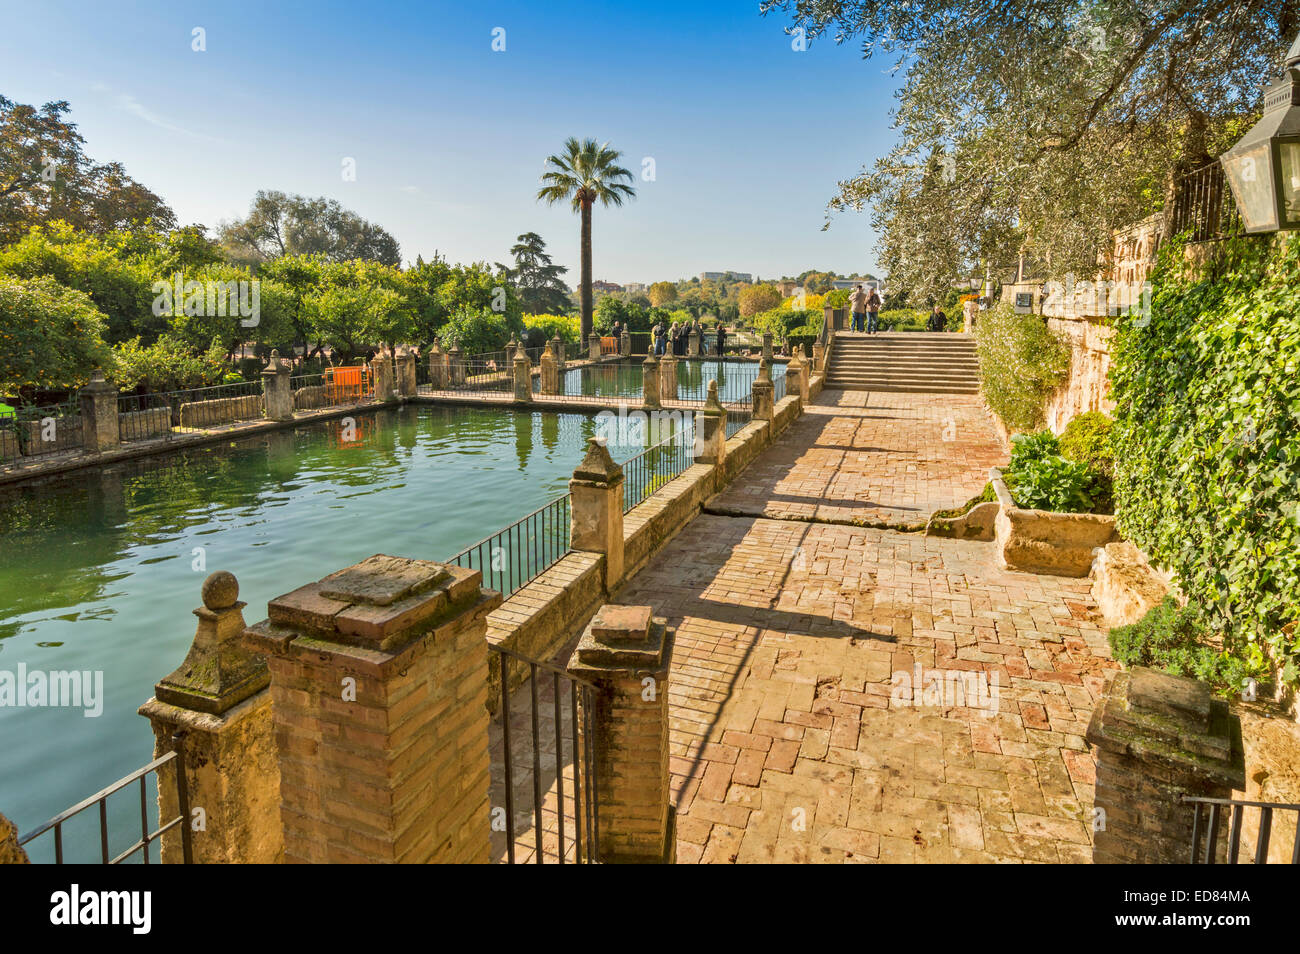 CORDOBA SPAIN THE ALCAZAR GARDENS OF THE CHRISTIAN MONARCHS AND FISH PONDS - Stock Image